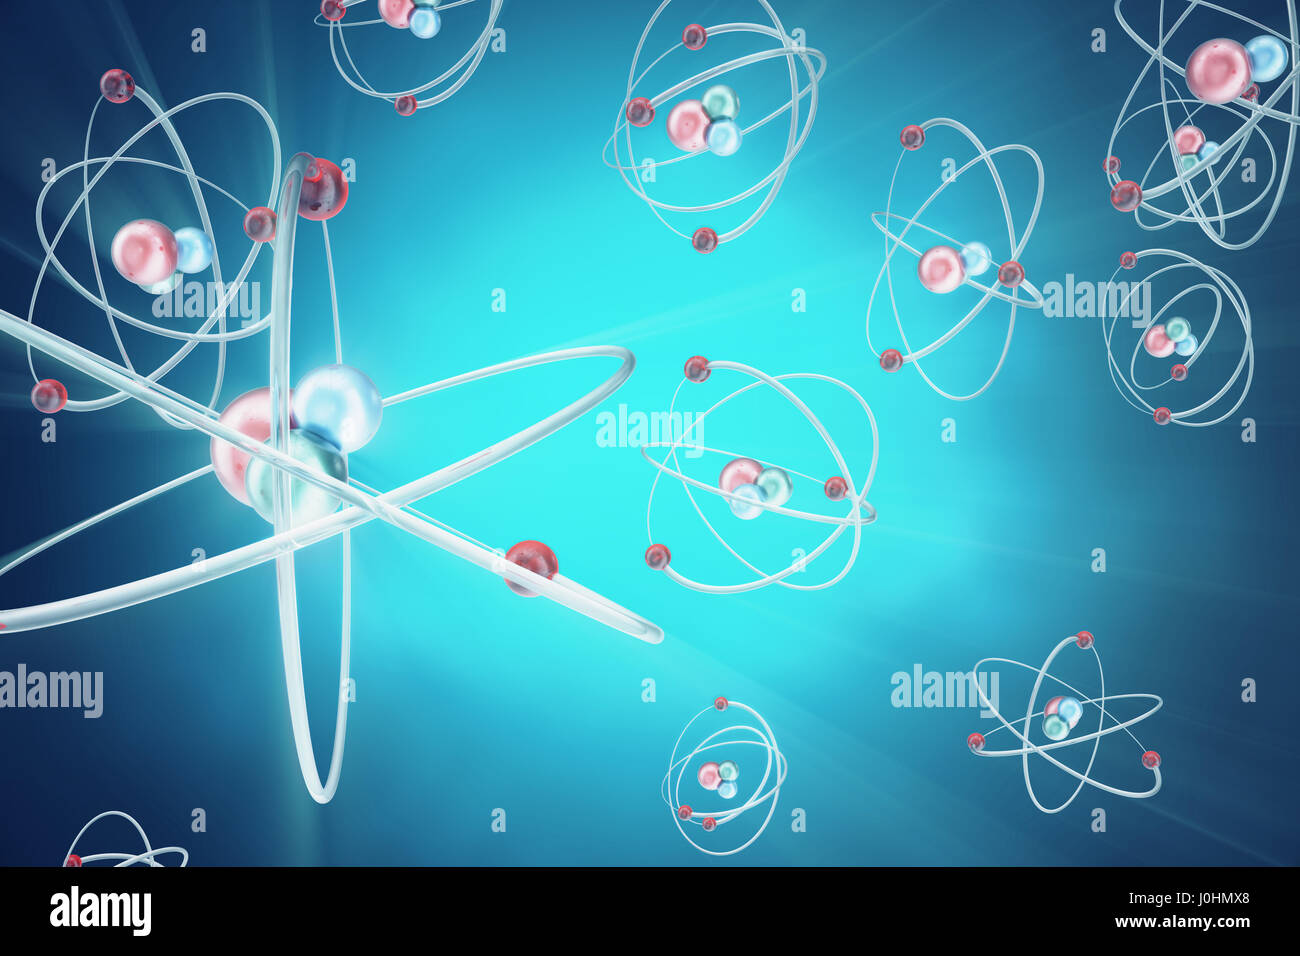 Atom Background, Shining Nuclear Model Atoms And Electrons